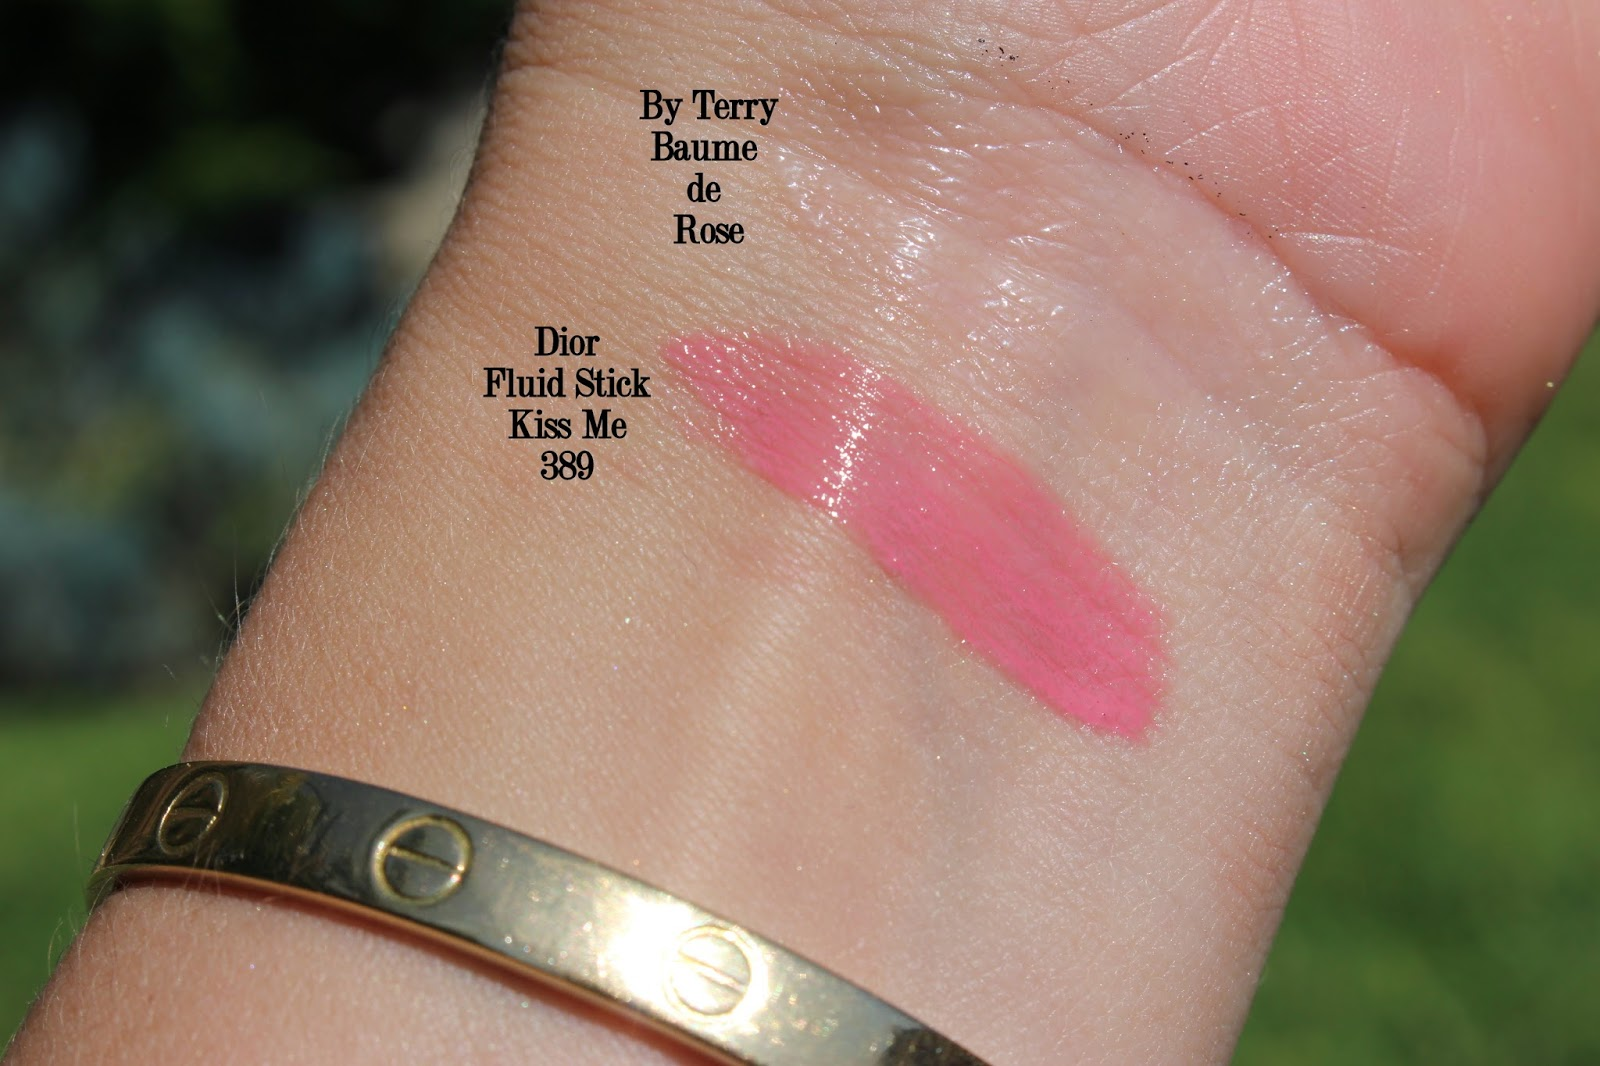 rose balm by terry